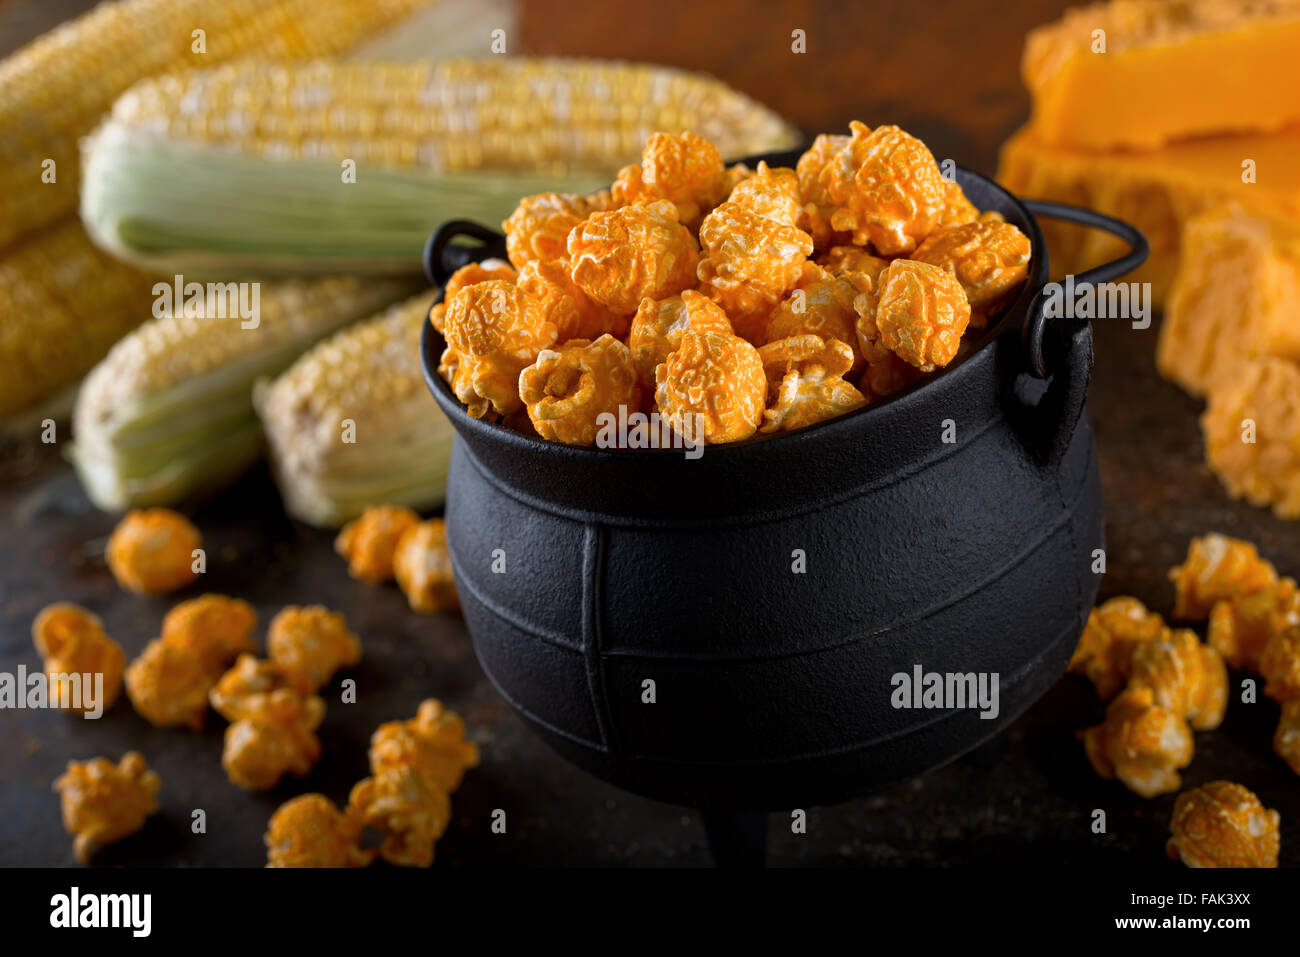 Delicious homemade cheddar cheese kettle corn popcorn. - Stock Image